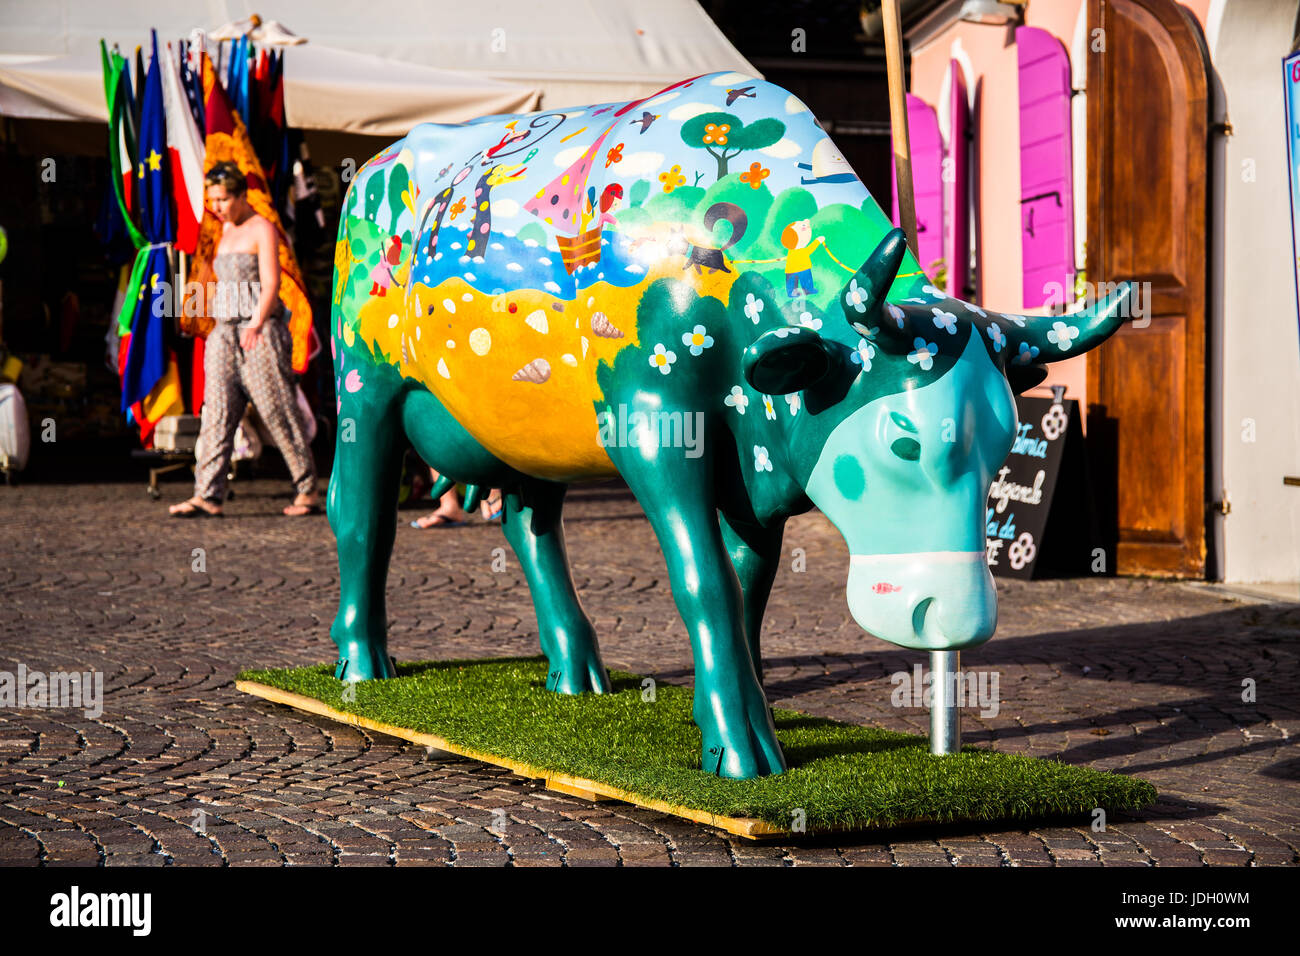 Decorative, human made cow with different colorful drawings in city center - Stock Image